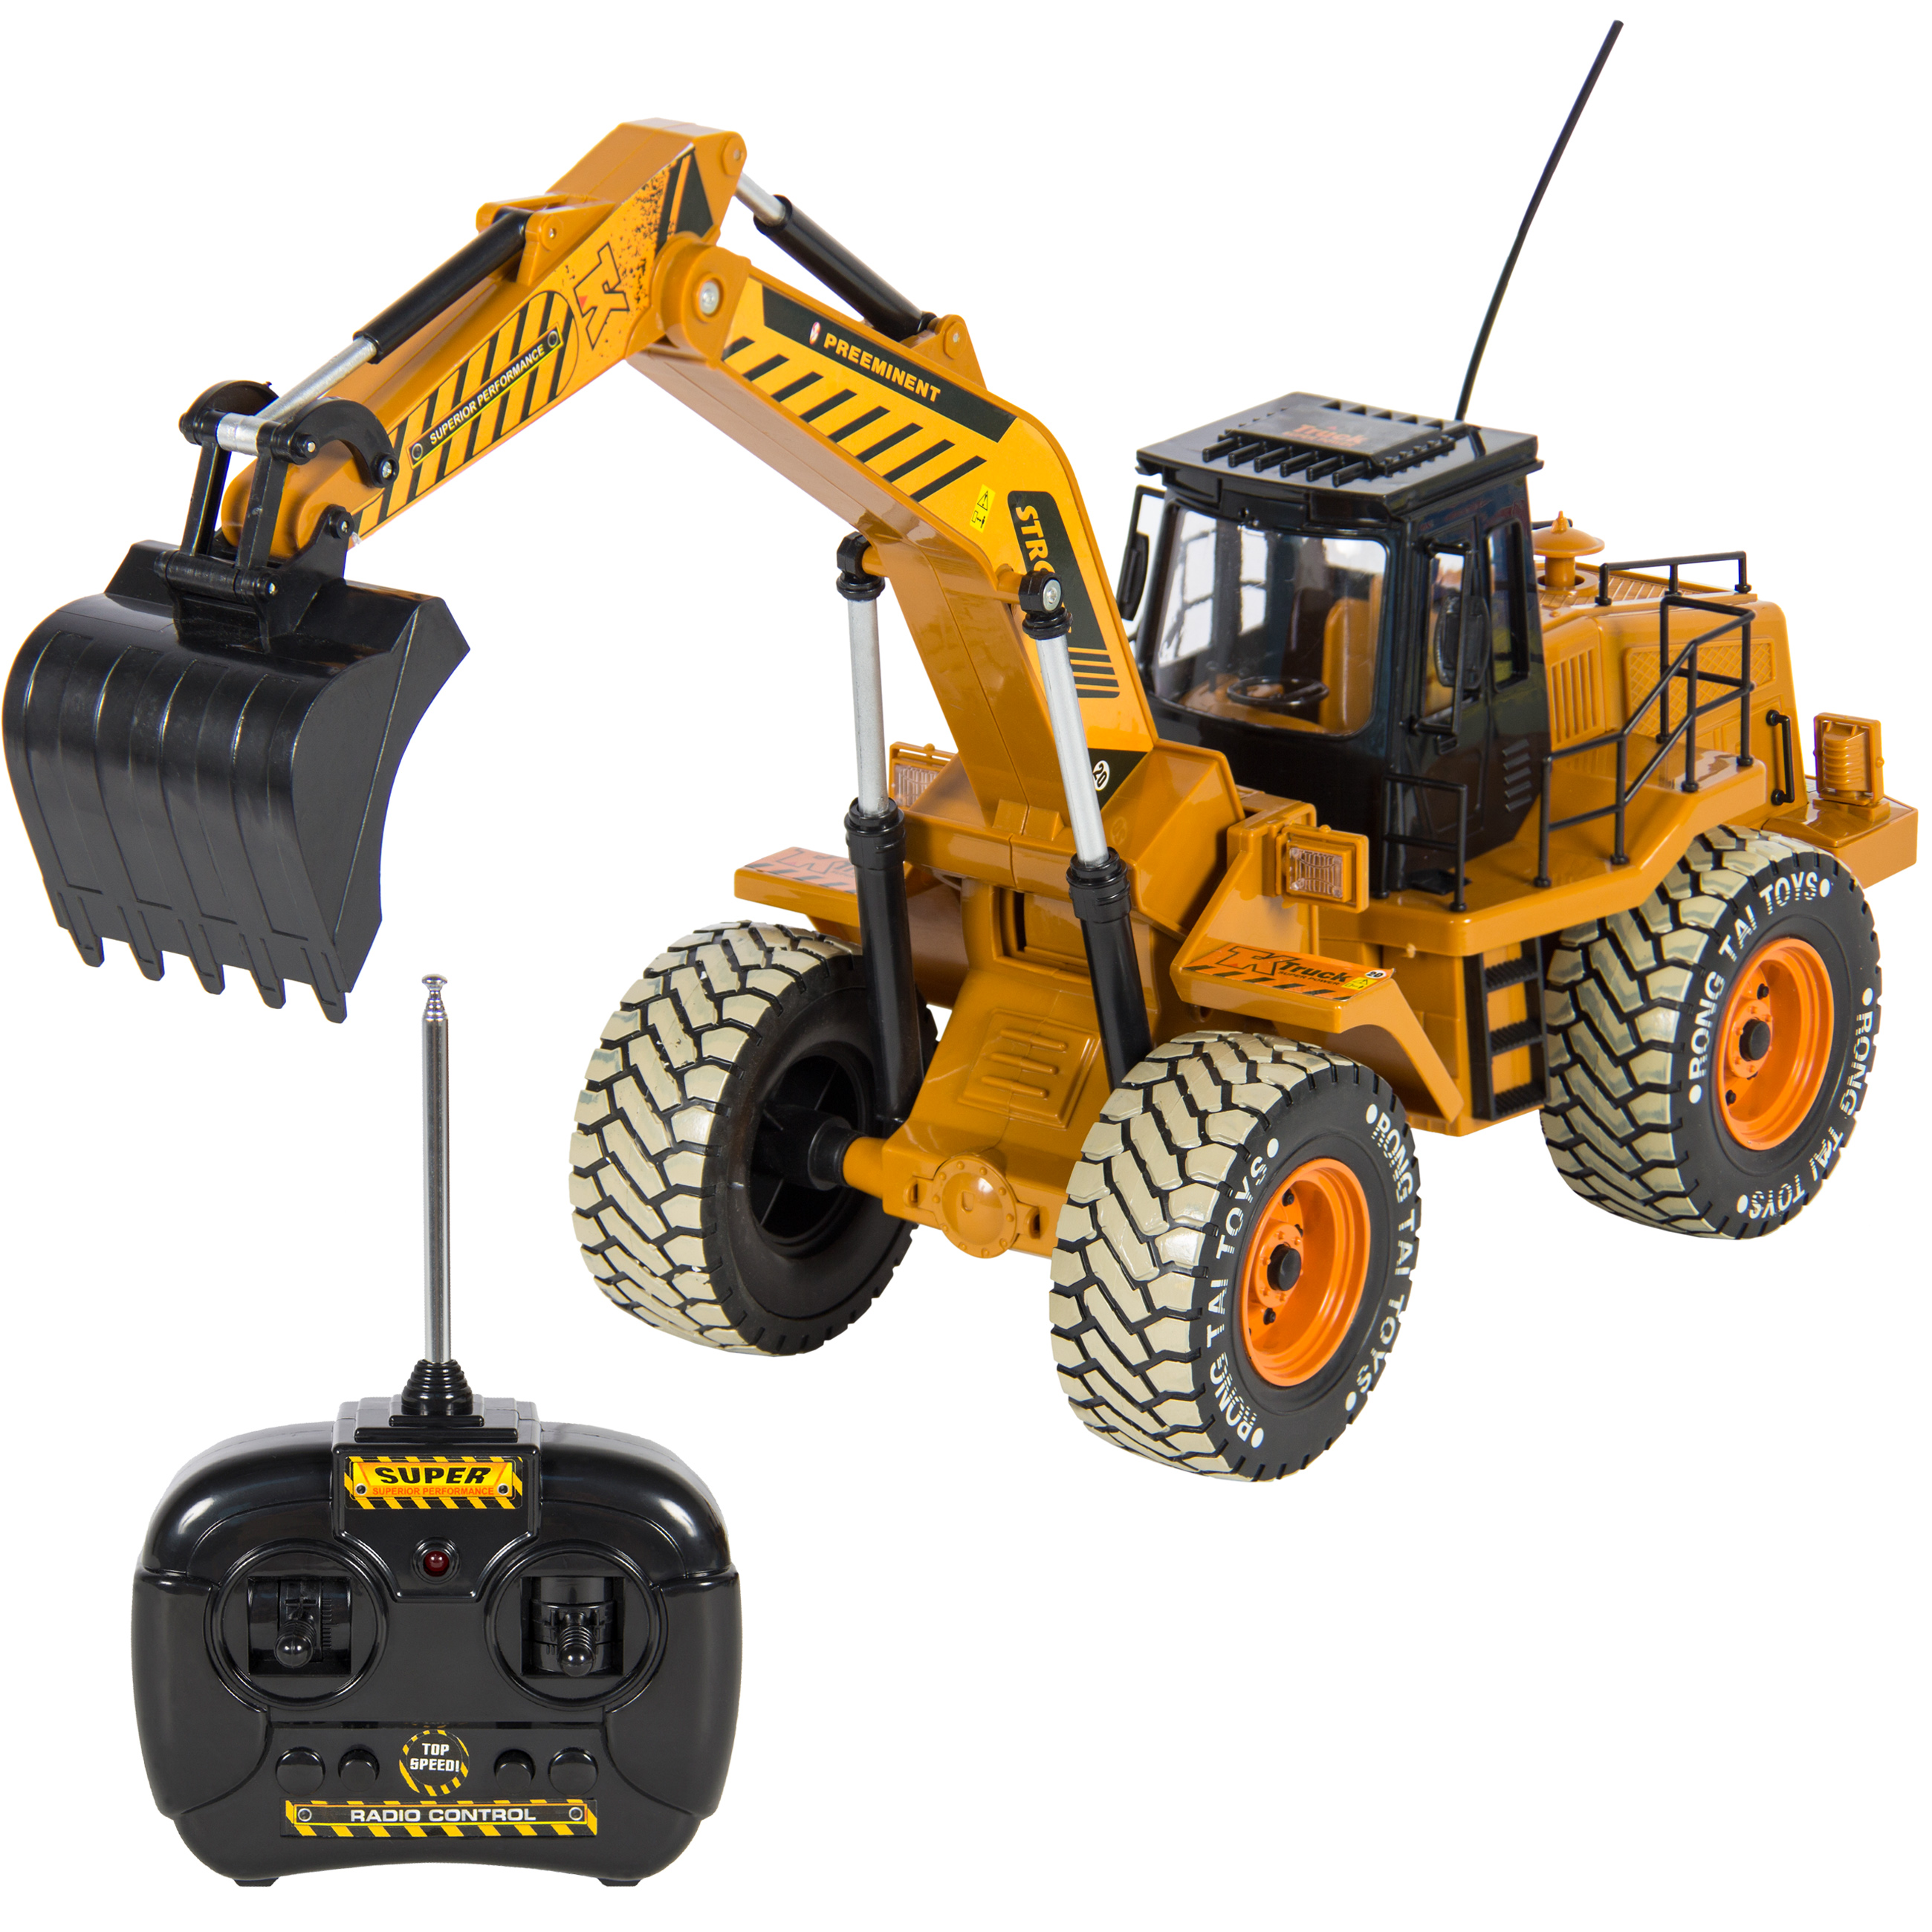 1:10 Scale RC Excavator Tractor Digger Construction Truck Remote Control Battery Powered Electric 6 Channel by